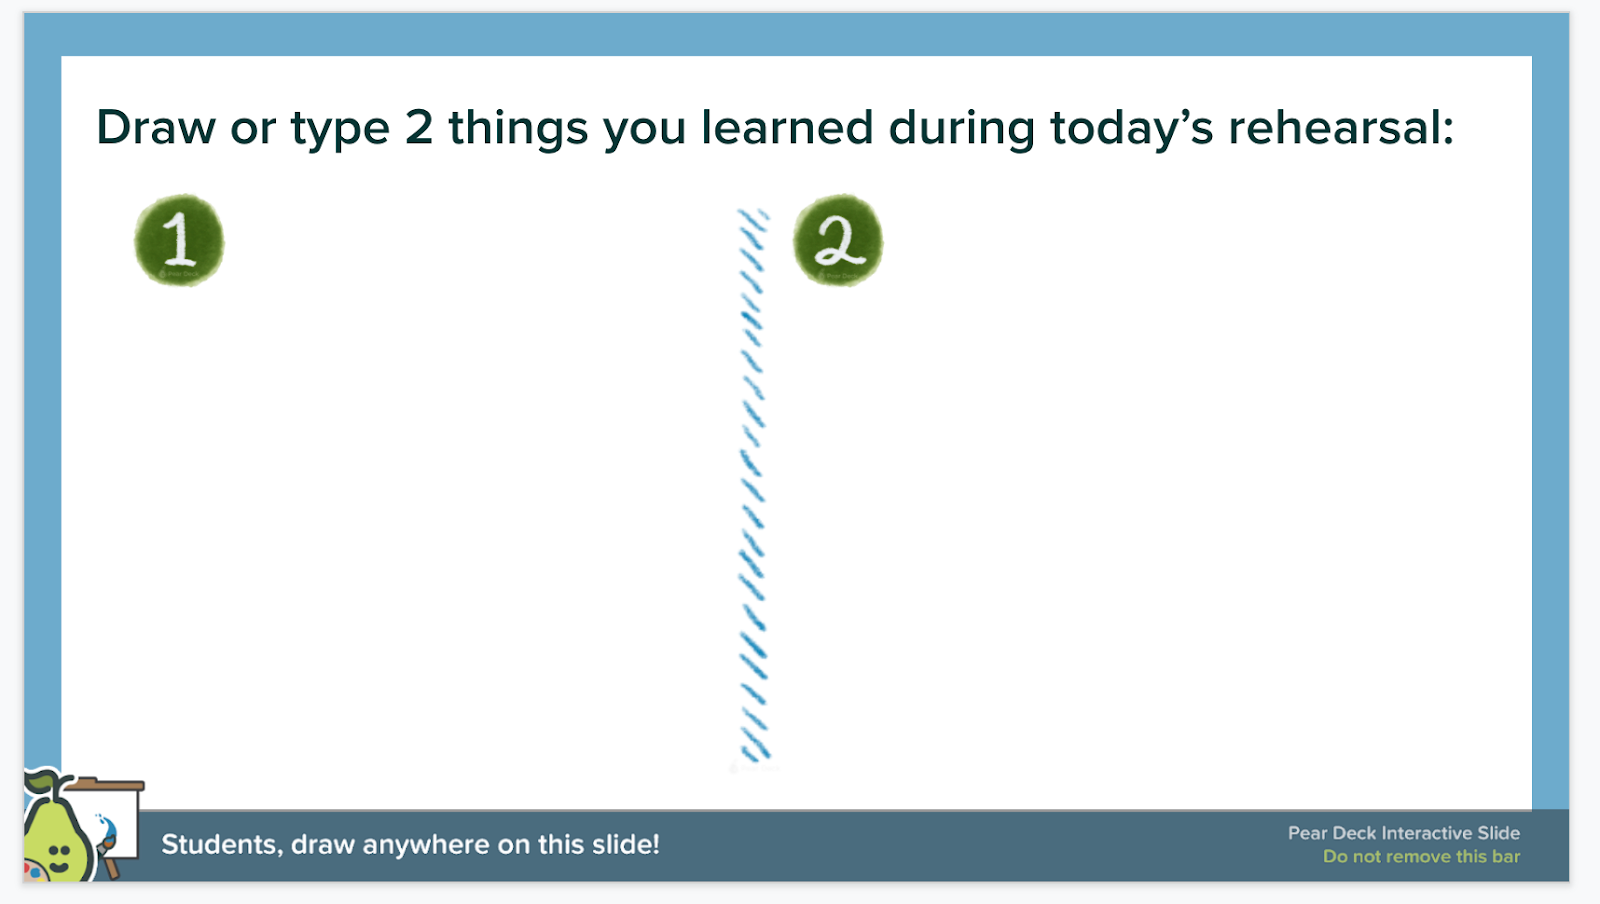 Student engagement using Pear Deck